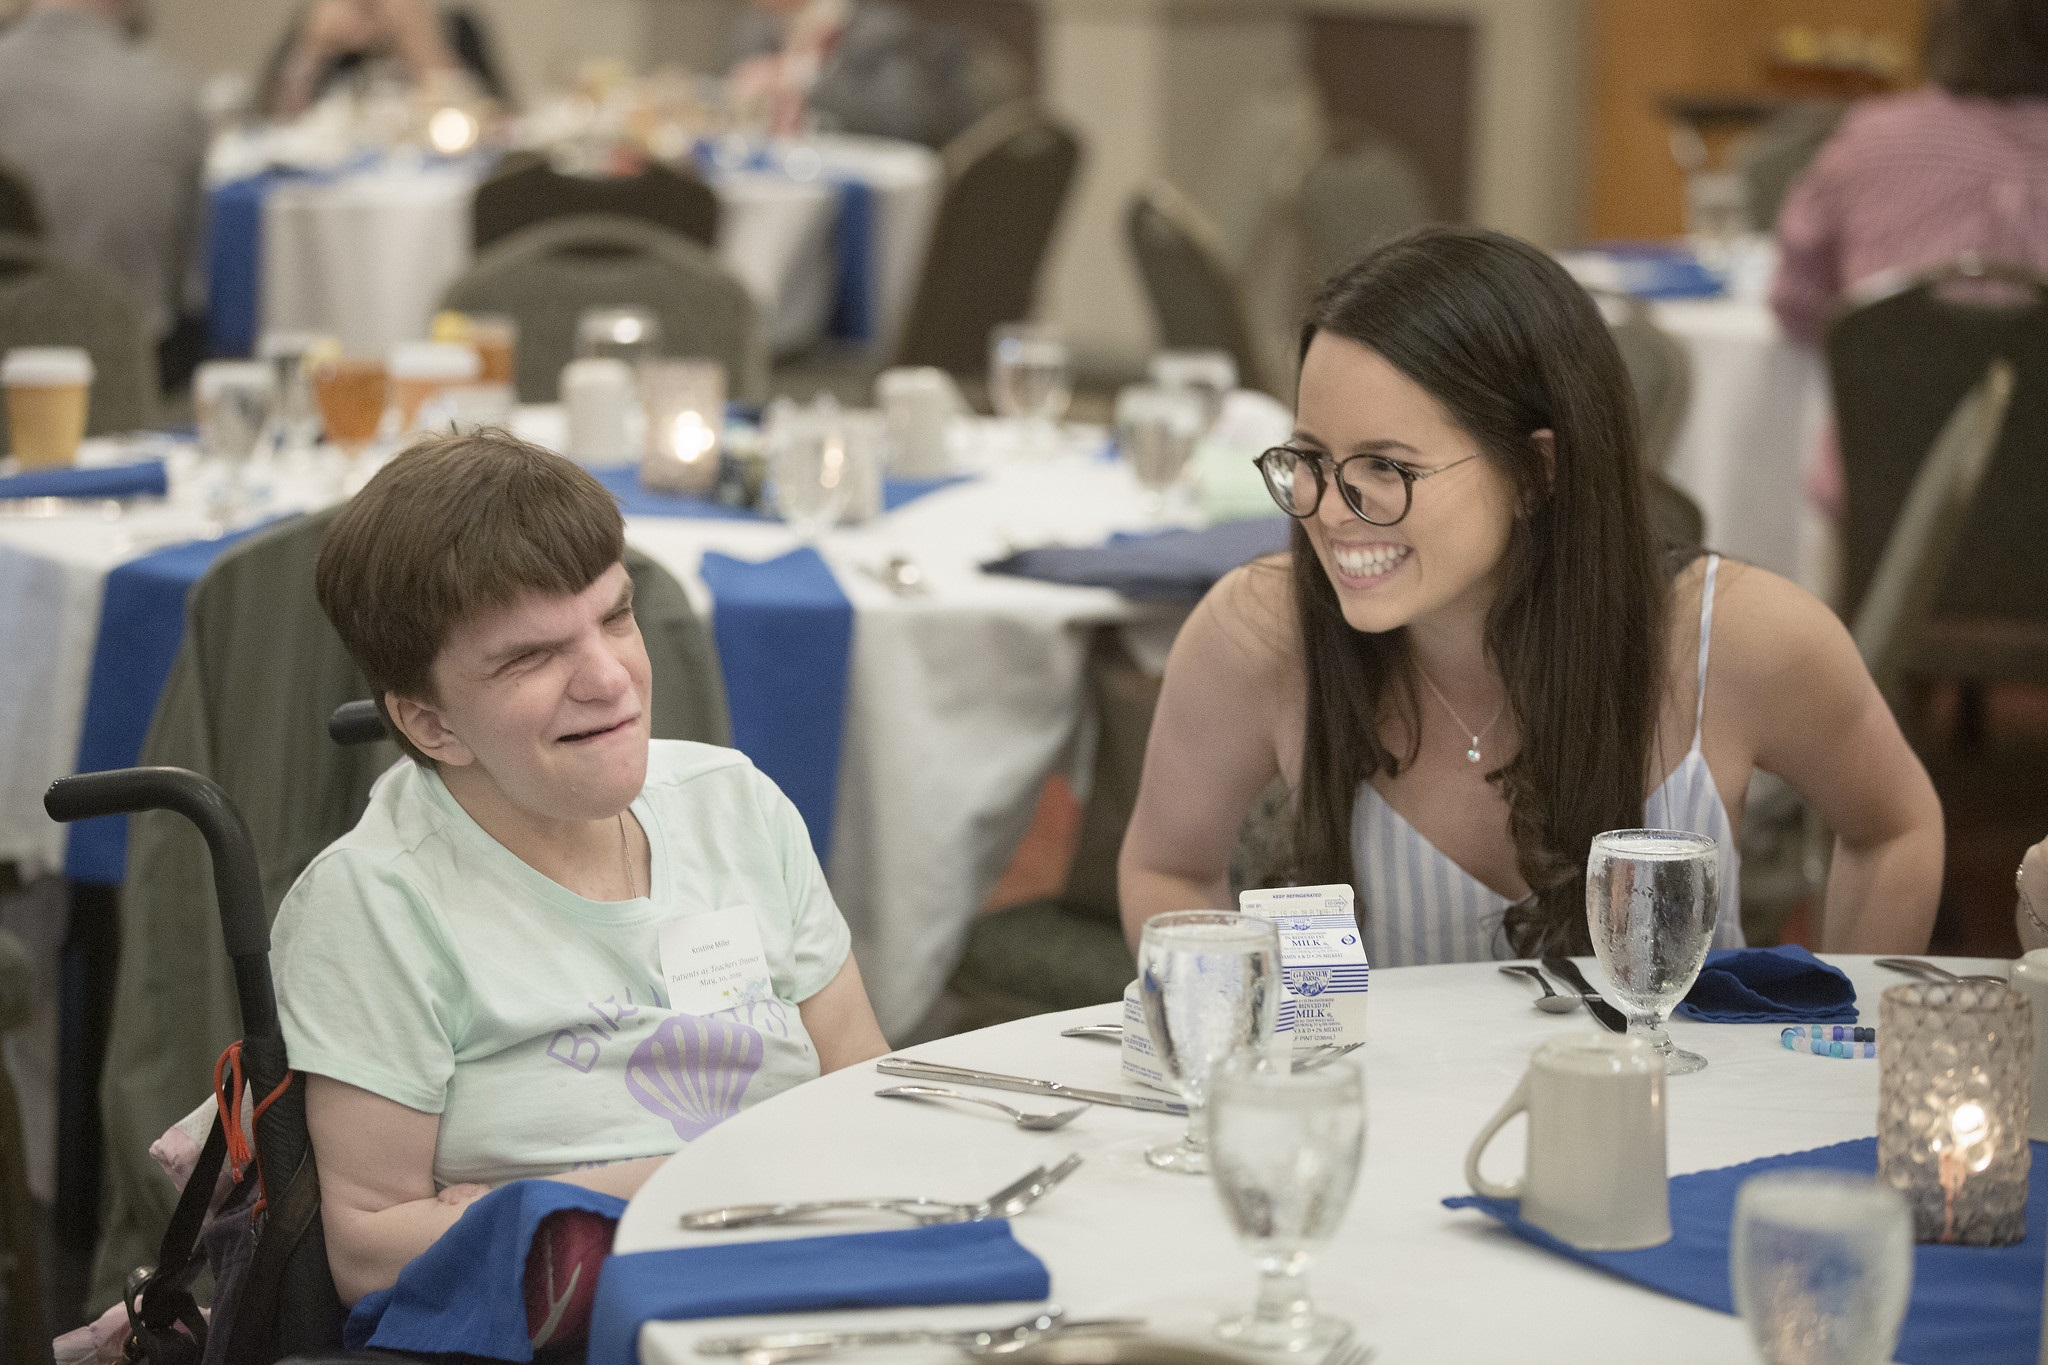 Medical student Daniela Medina, right, smiles at her patient teacher, Kristine Miller, at the Patients as Teachers recognition dinner in May 2019. Medina is wearing glasses and a strapless sundress. Miller has short hair and is seated in a wheelchair and wearing a T-shirt and nametag. Silverware, napkins and glasses are on the table in front of them.